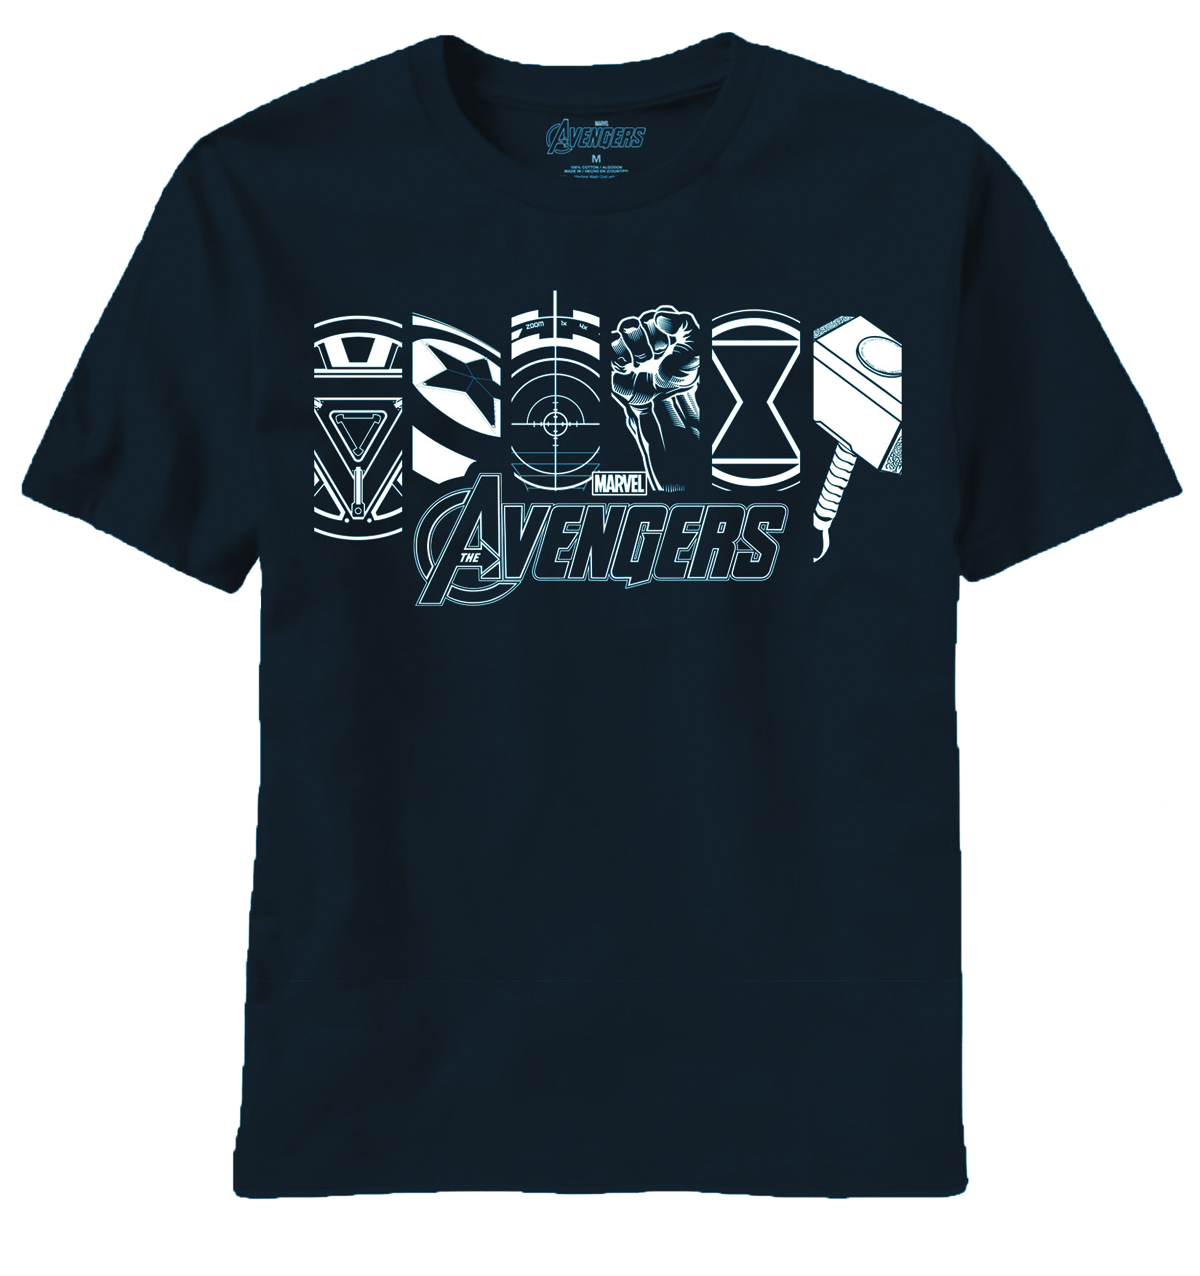 AVENGERS MOVIE LIT UP ICONS NAVY T/S MED